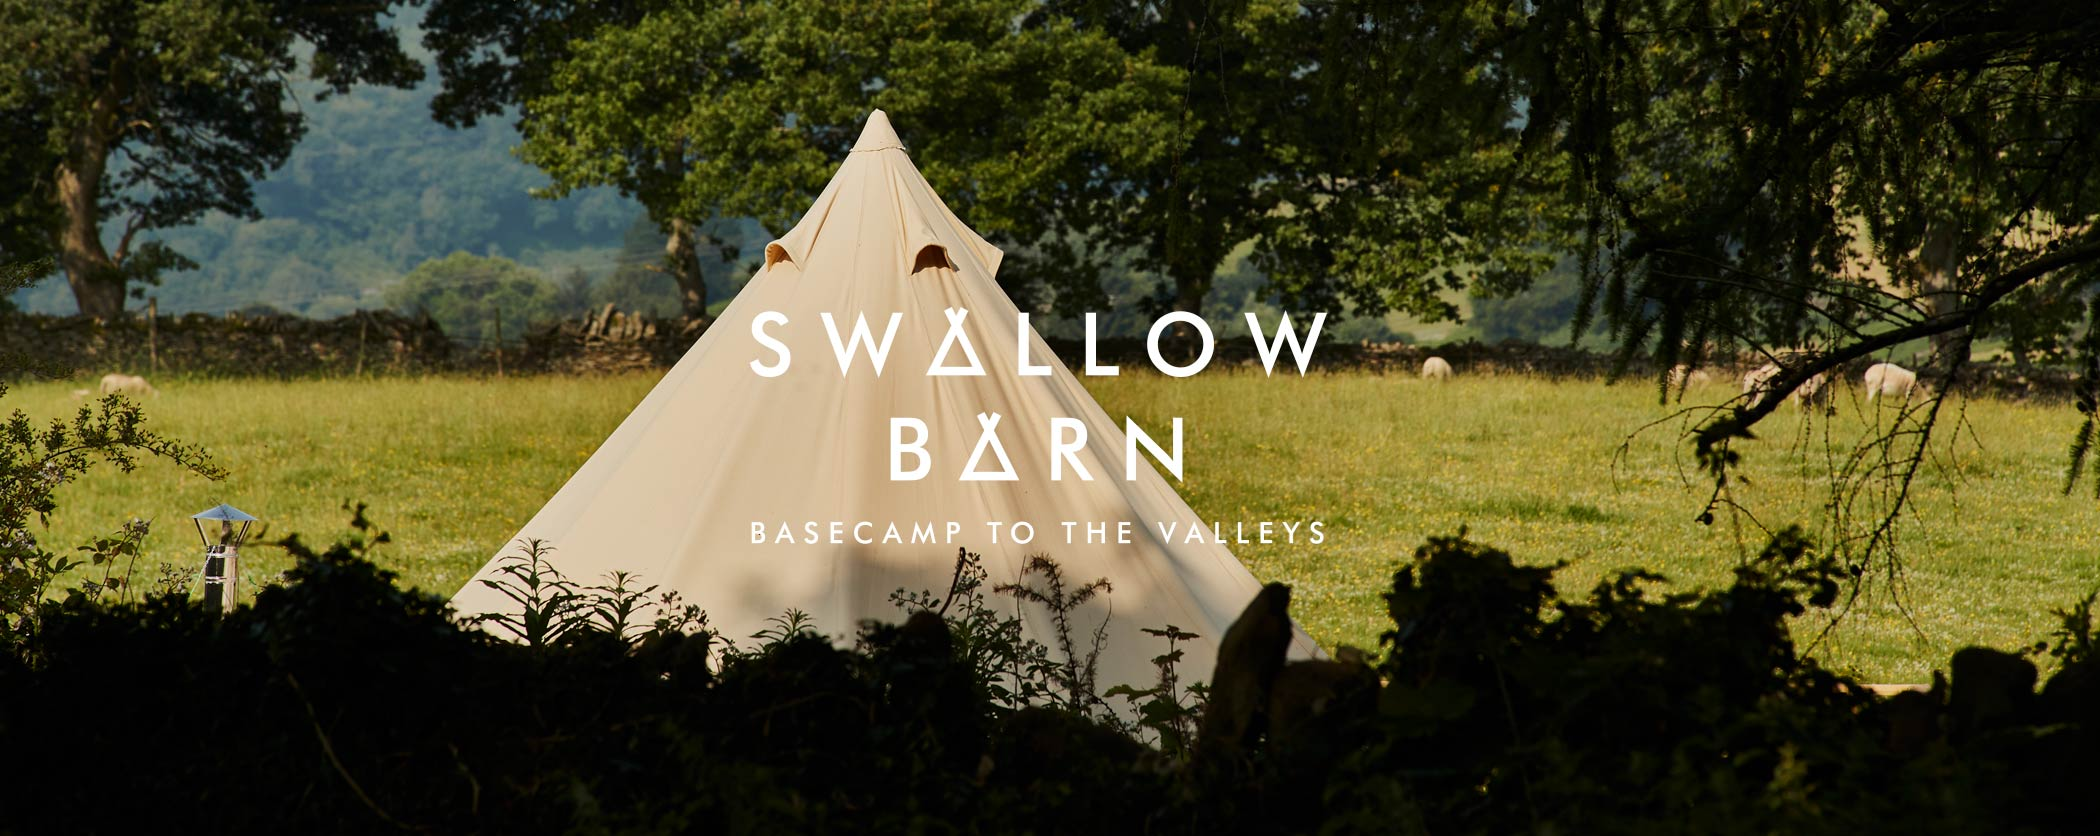 swallowbarn-brecon-beacons